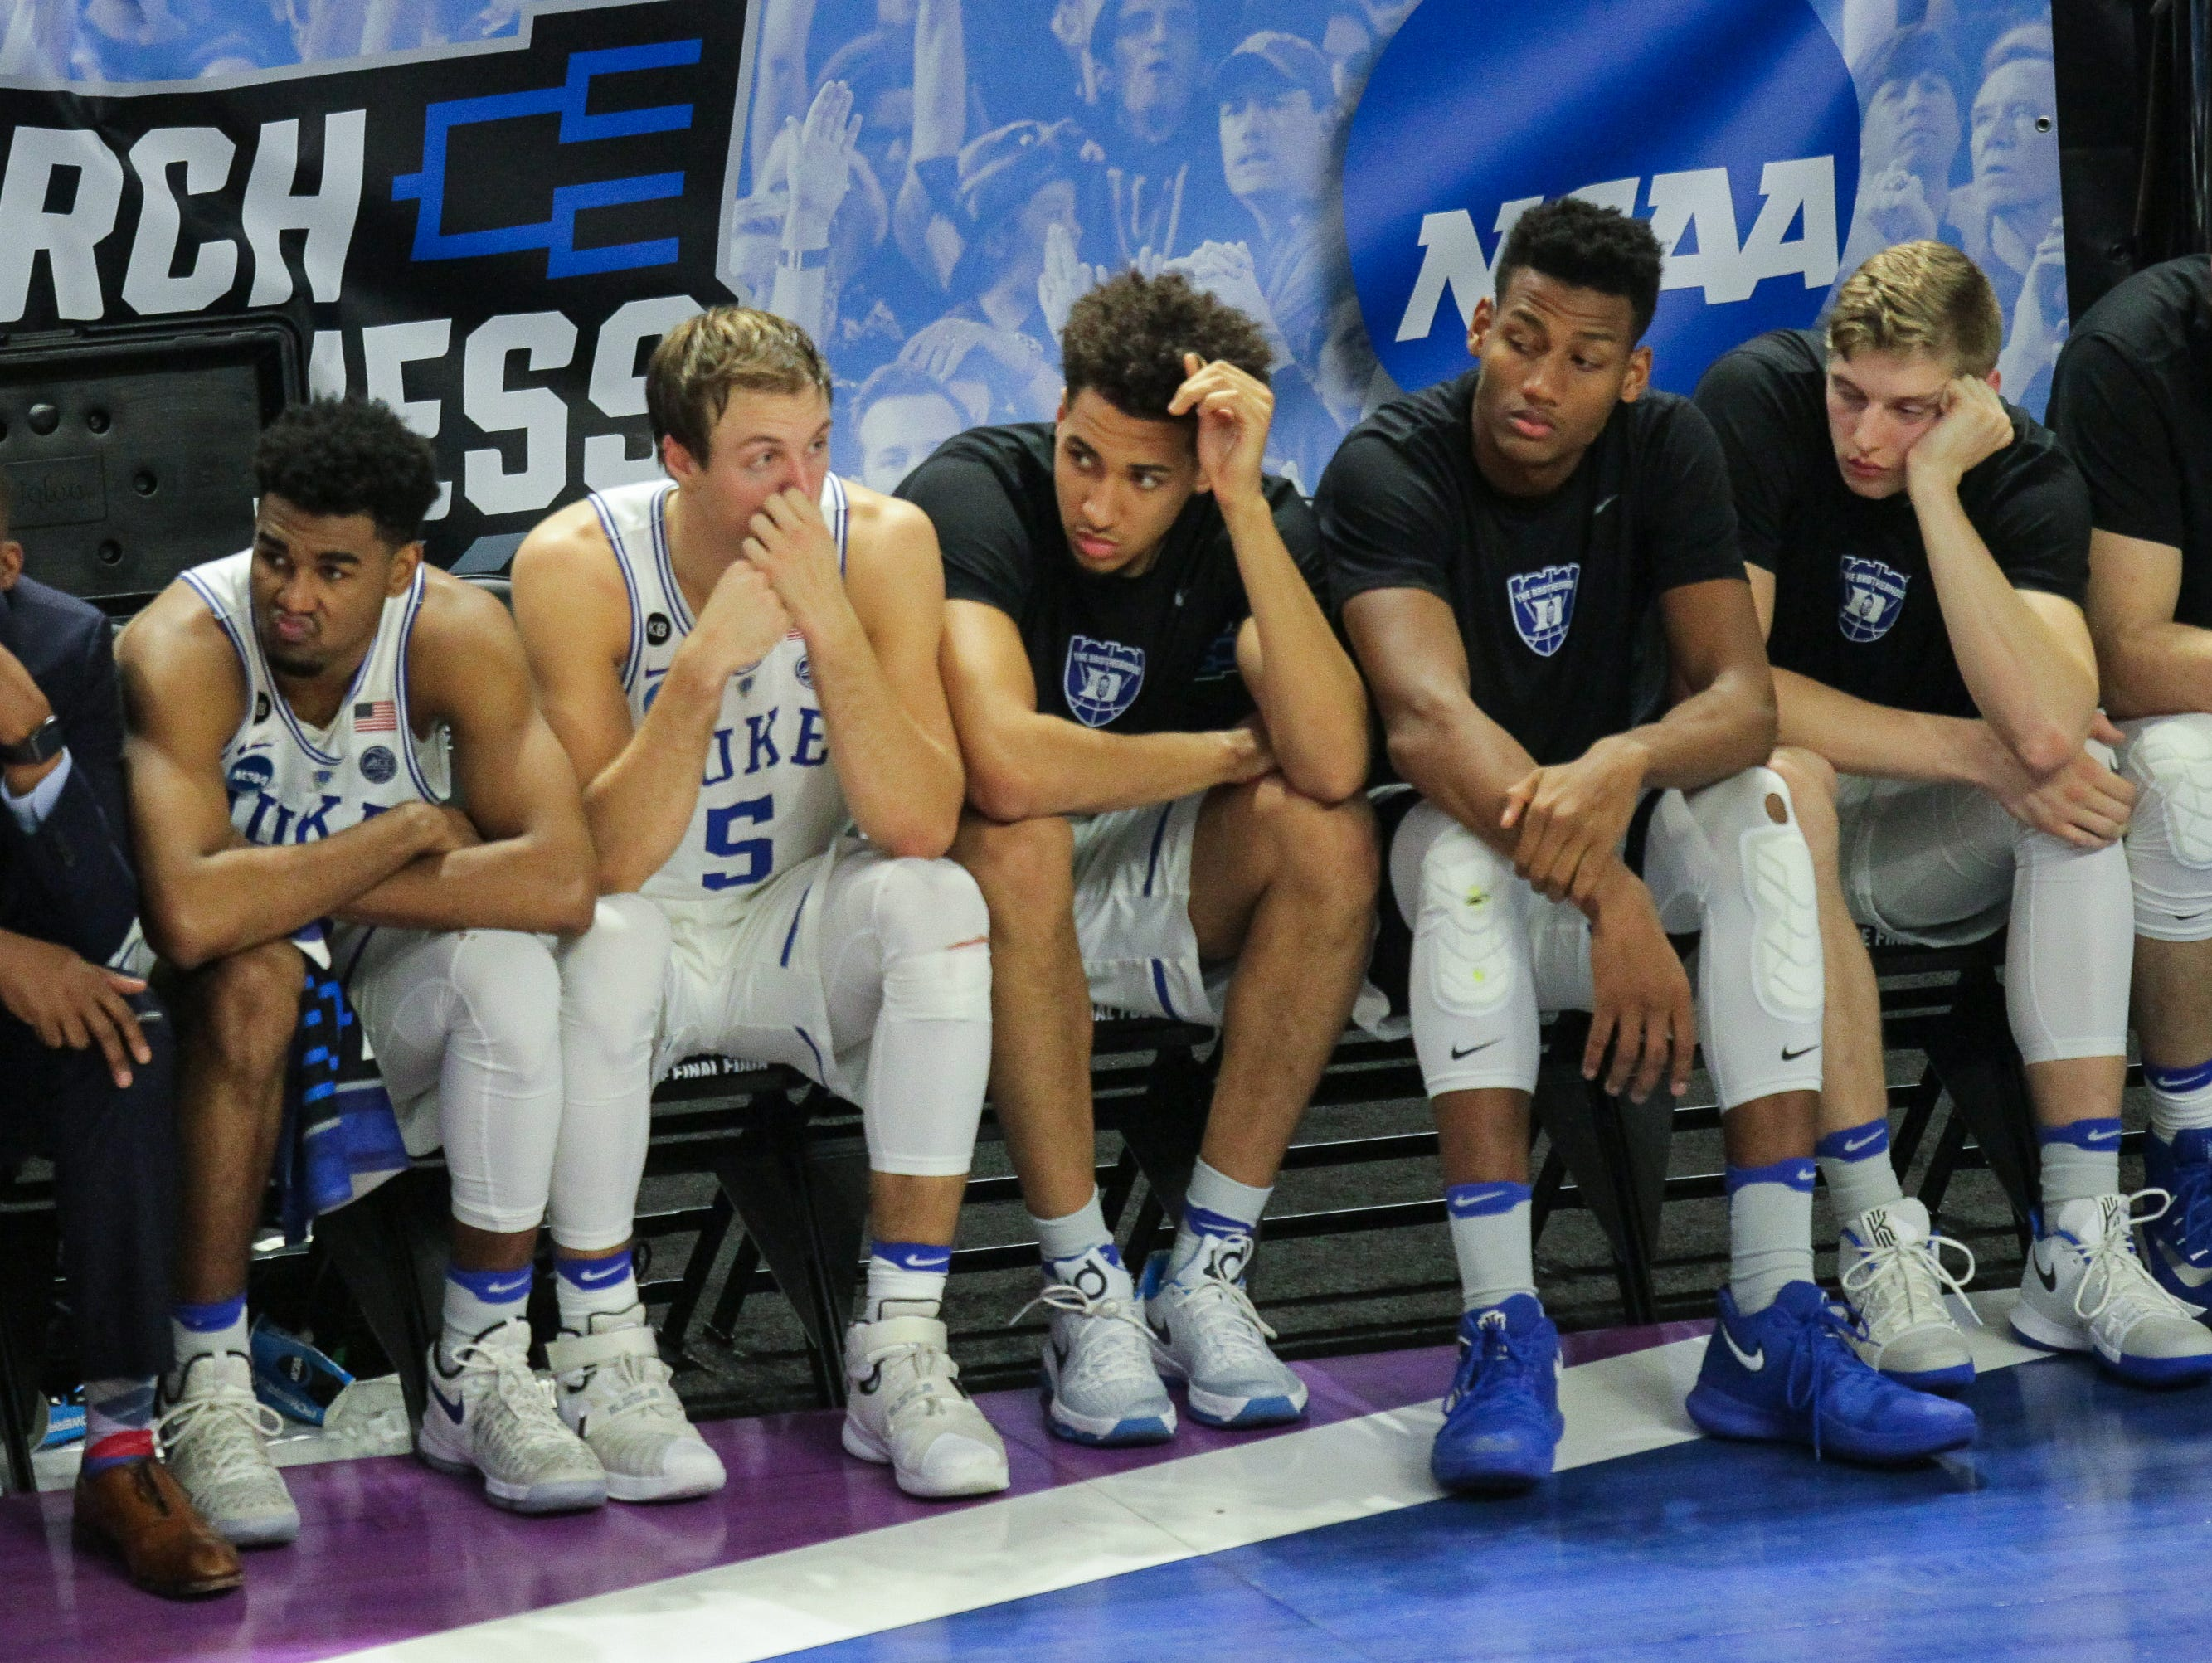 Duke reacts in the closing minute before losing 88-81 to South Carolina during the 2nd round of the NCAA Tournament at Bon Secours Wellness Arena in downtown Greenville on Sunday, March 19, 2017.